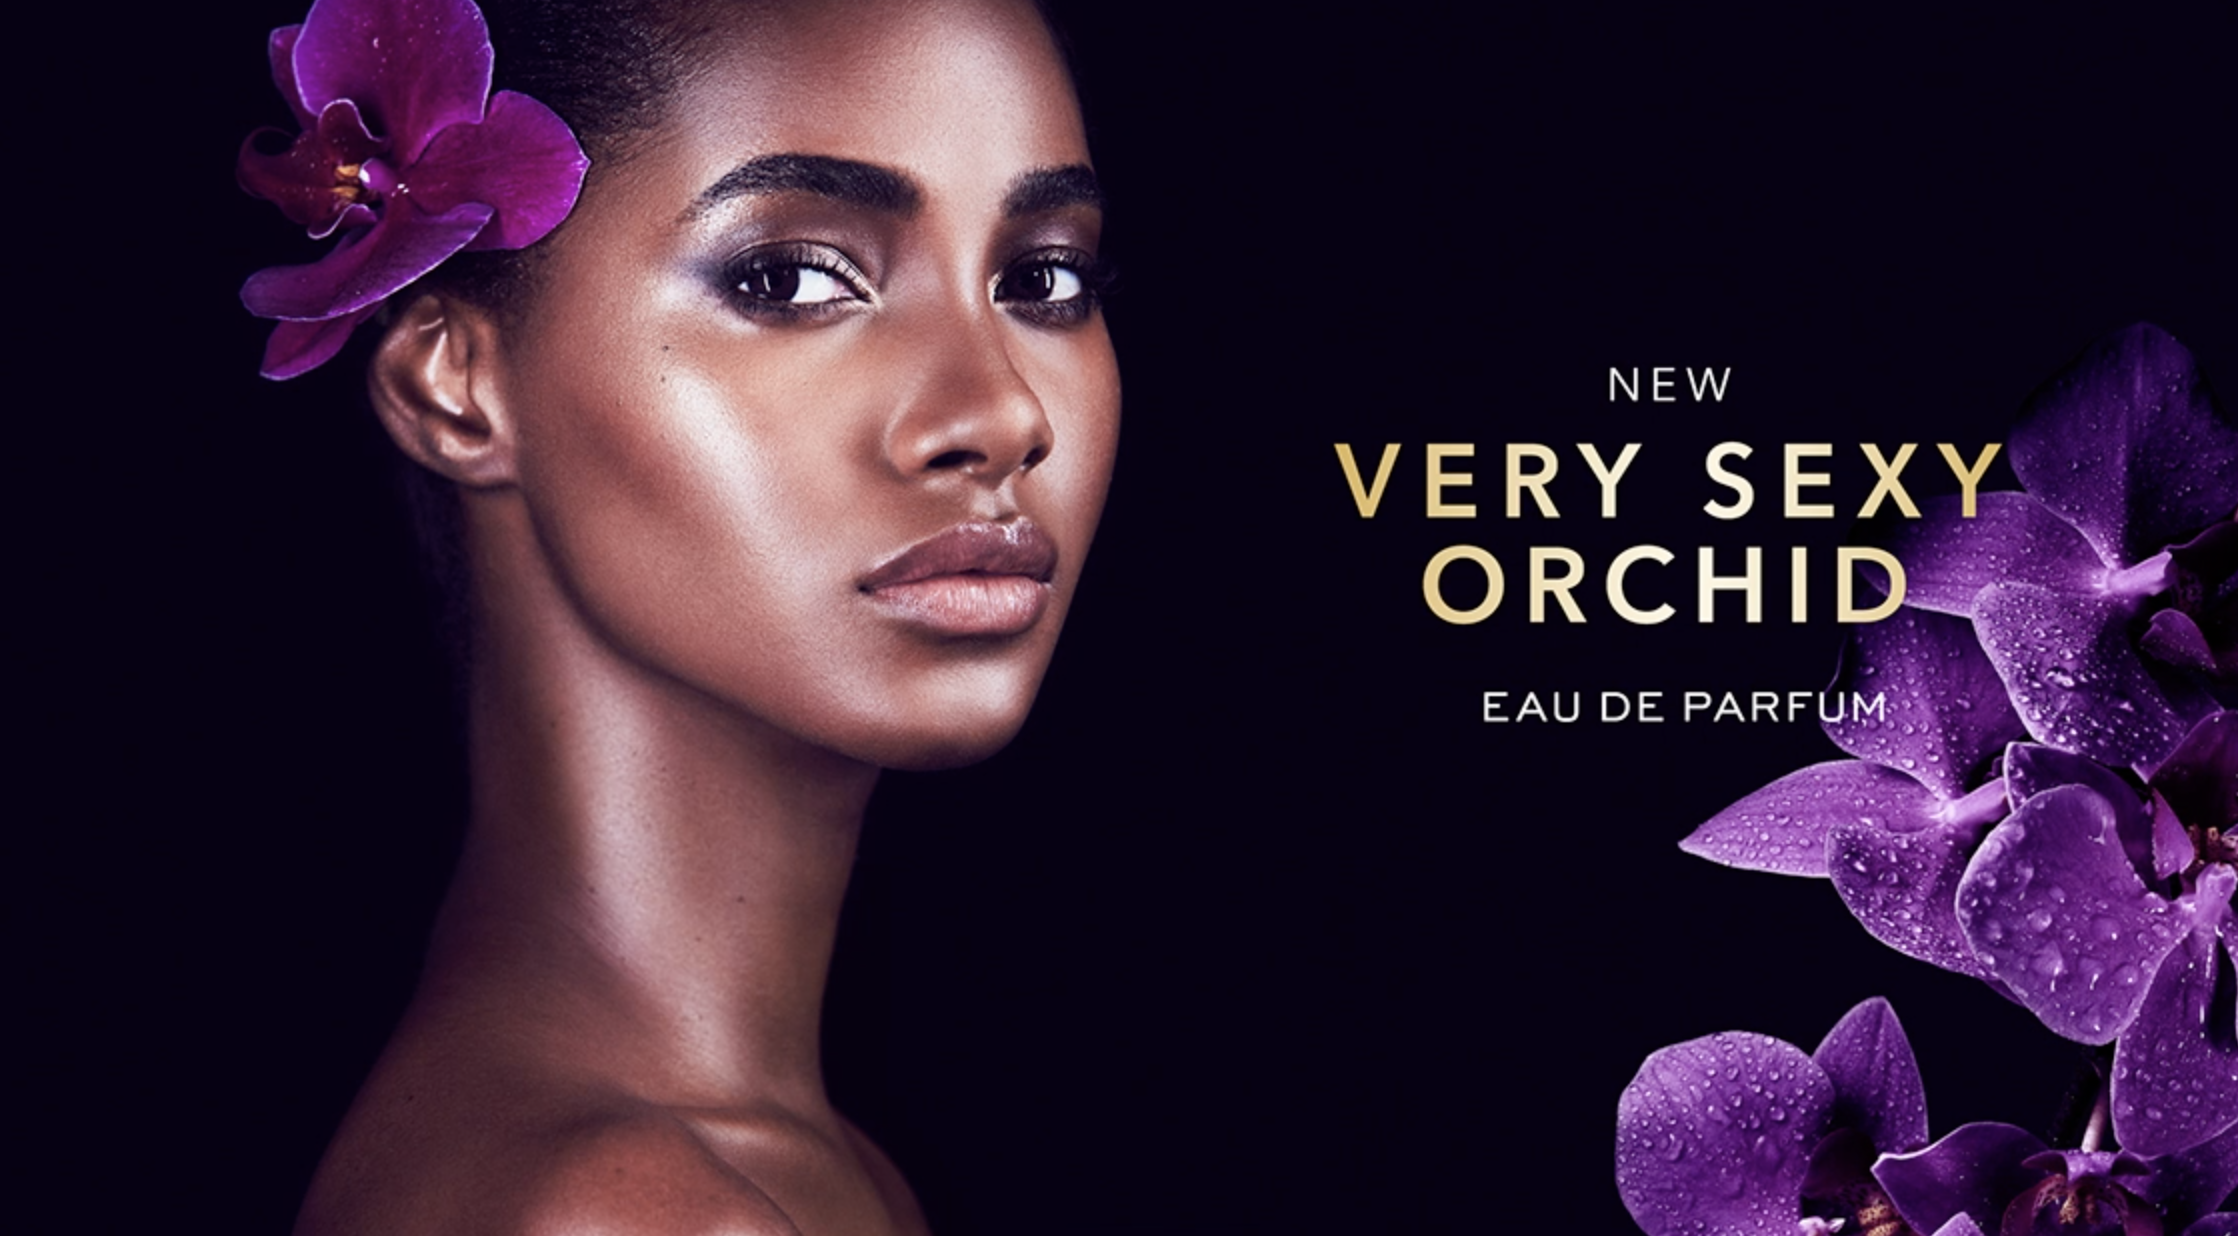 Victoria Secret - Very Sexy Orchid